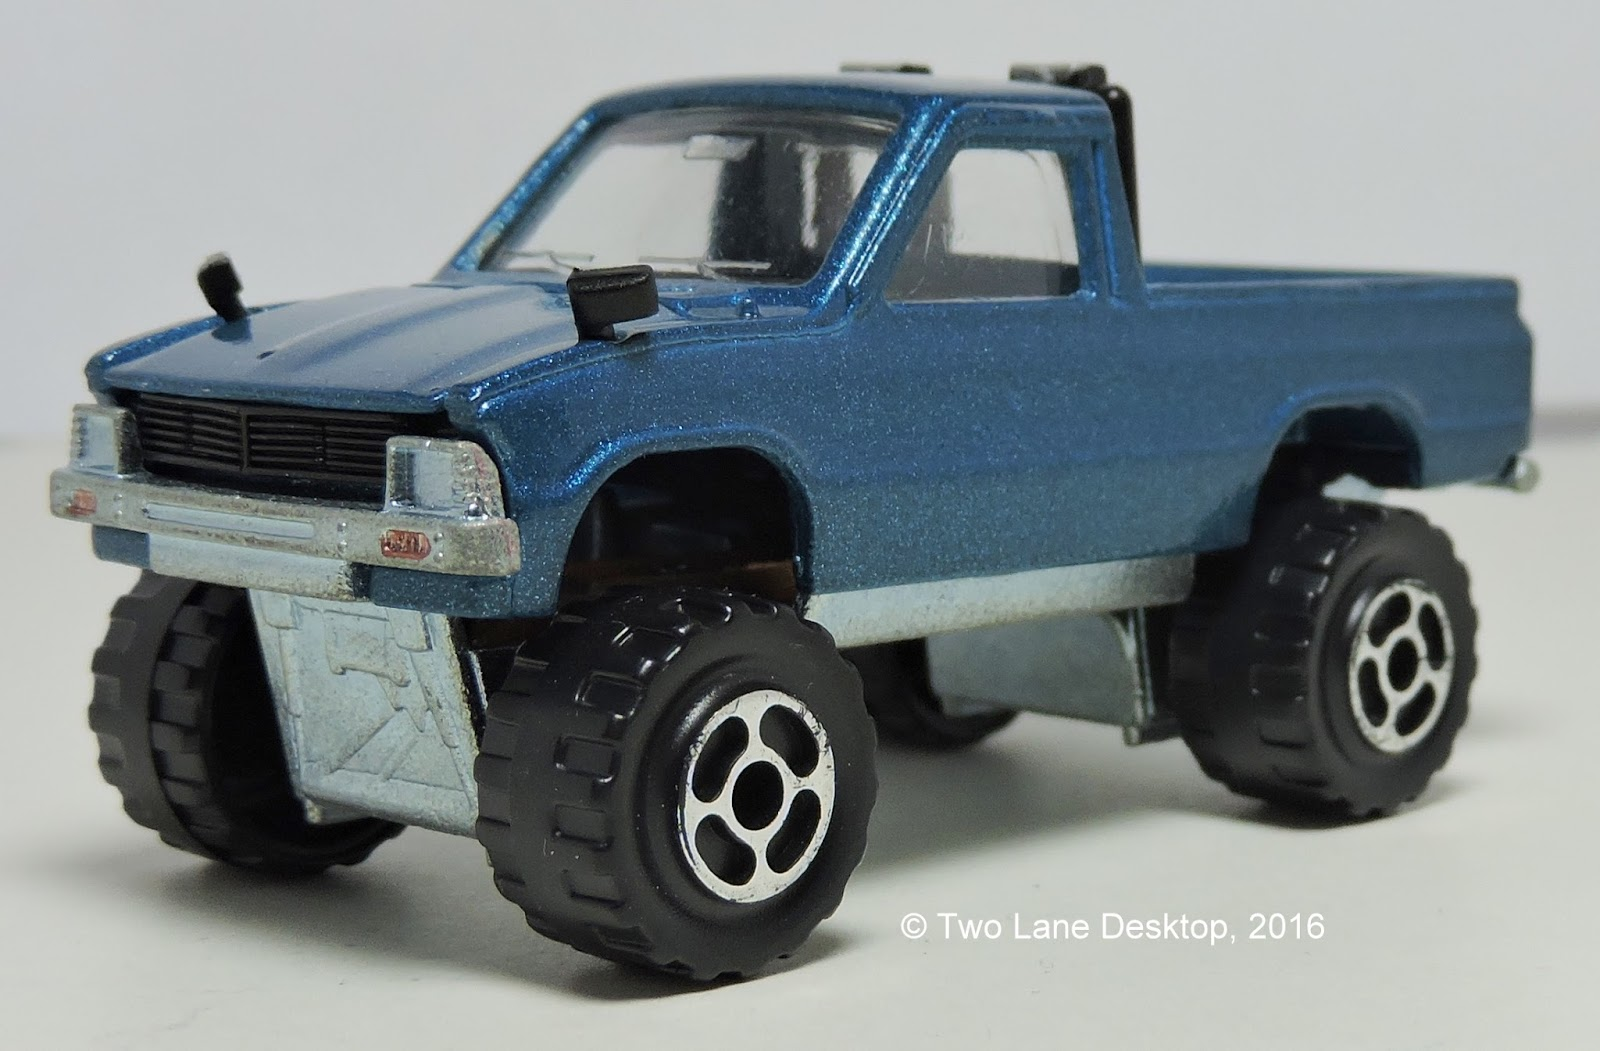 Two Lane Desktop: Majorette and Tomica 1980 Toyota Hilux's